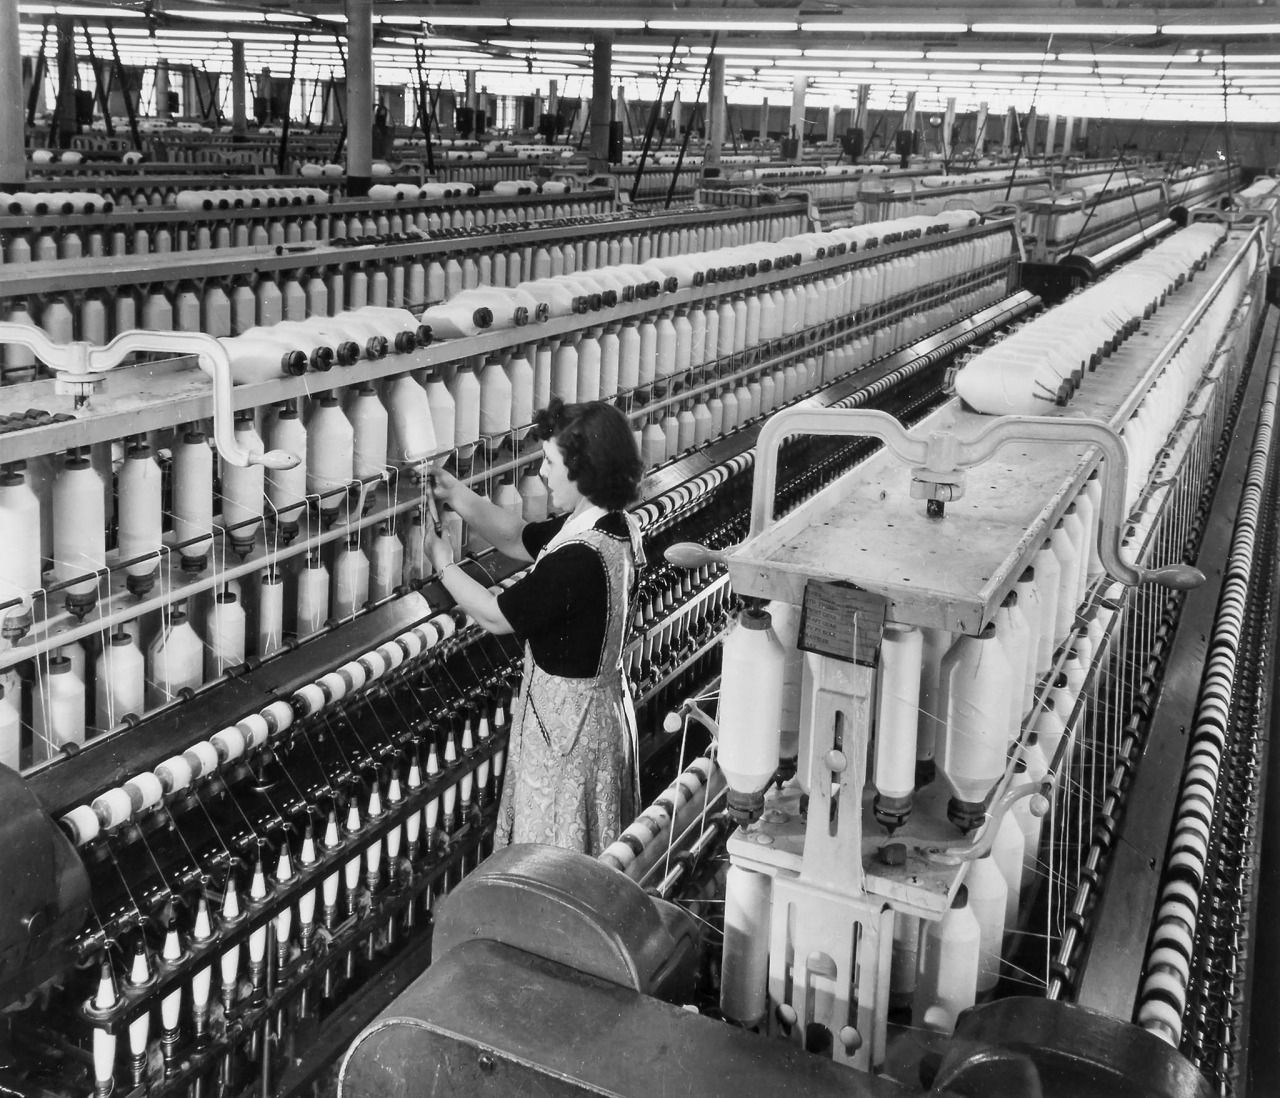 Andre Kertesz Textile Factory Cotton Spinning 1940s Semap